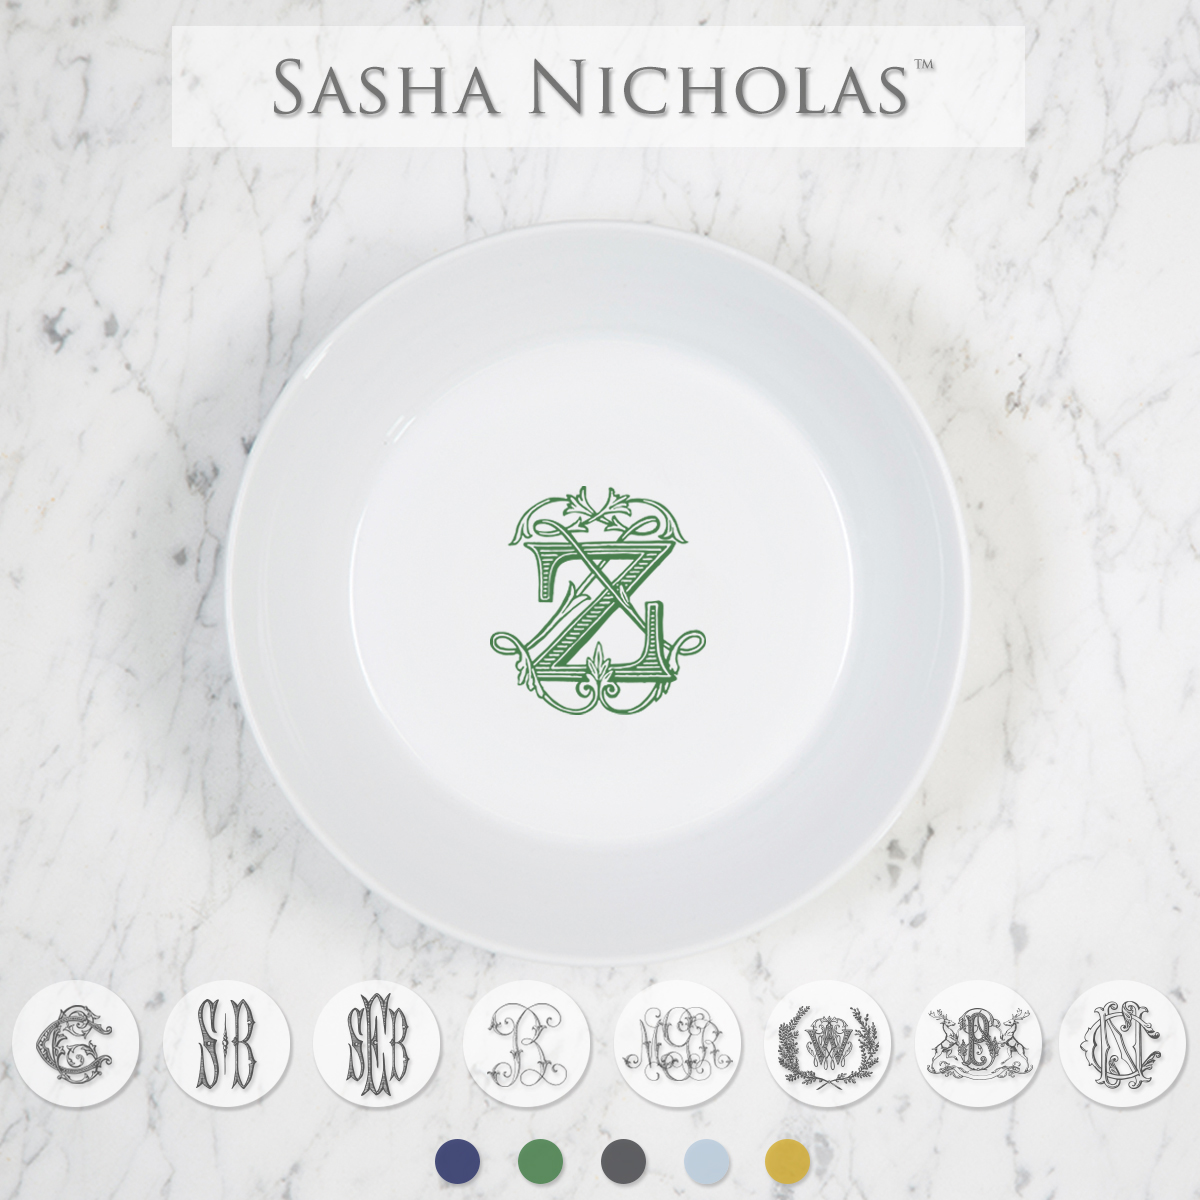 Sasha Nicholas Coup Contemporary Porcelain  Imagine Navy Bowl Dish Monogram monogrammed custom  Wedding Bridal Gift Registry